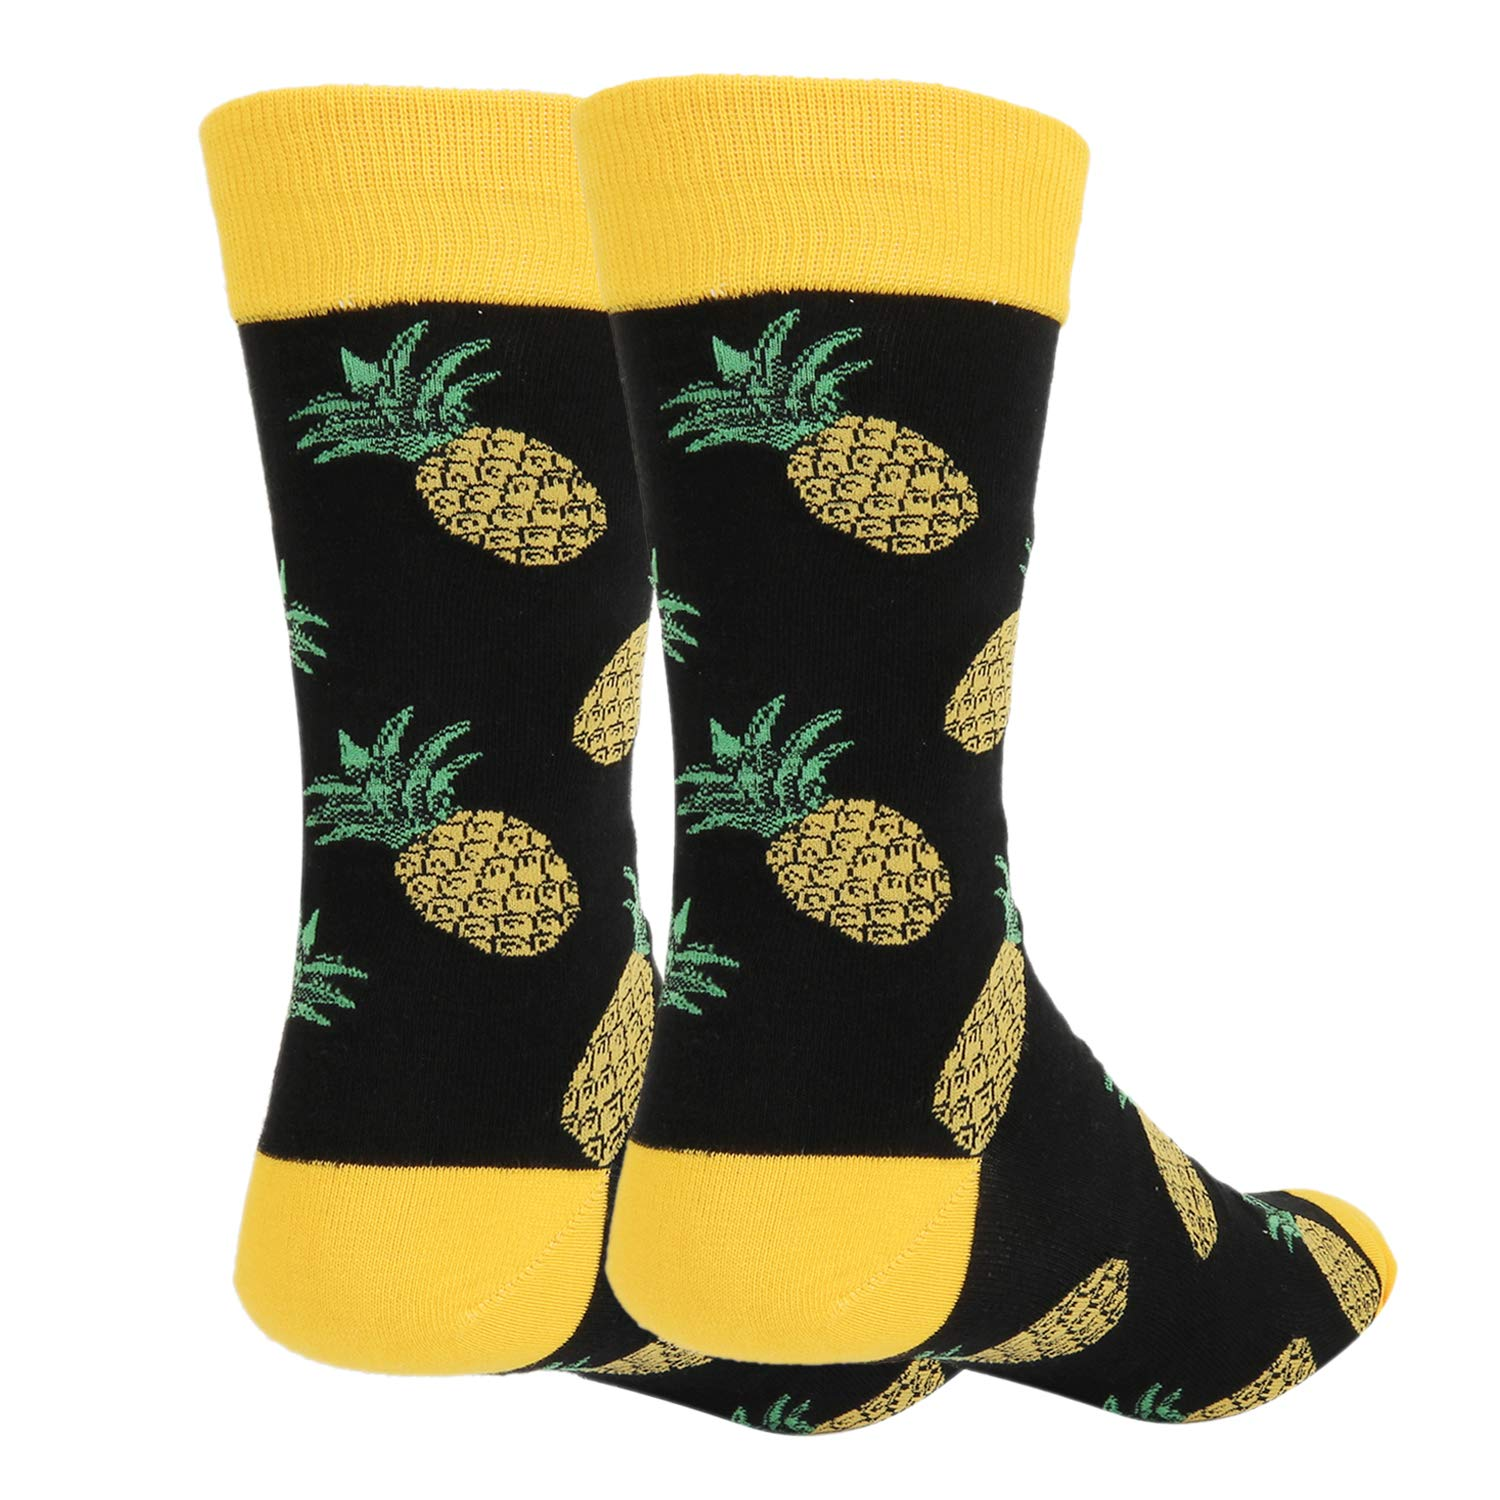 7a8faabdf96 Amazon.com  Zmart Men s Novelty Crazy Funny Pineapple Crew Socks Cool Funky  Fruit Dress Socks  Clothing